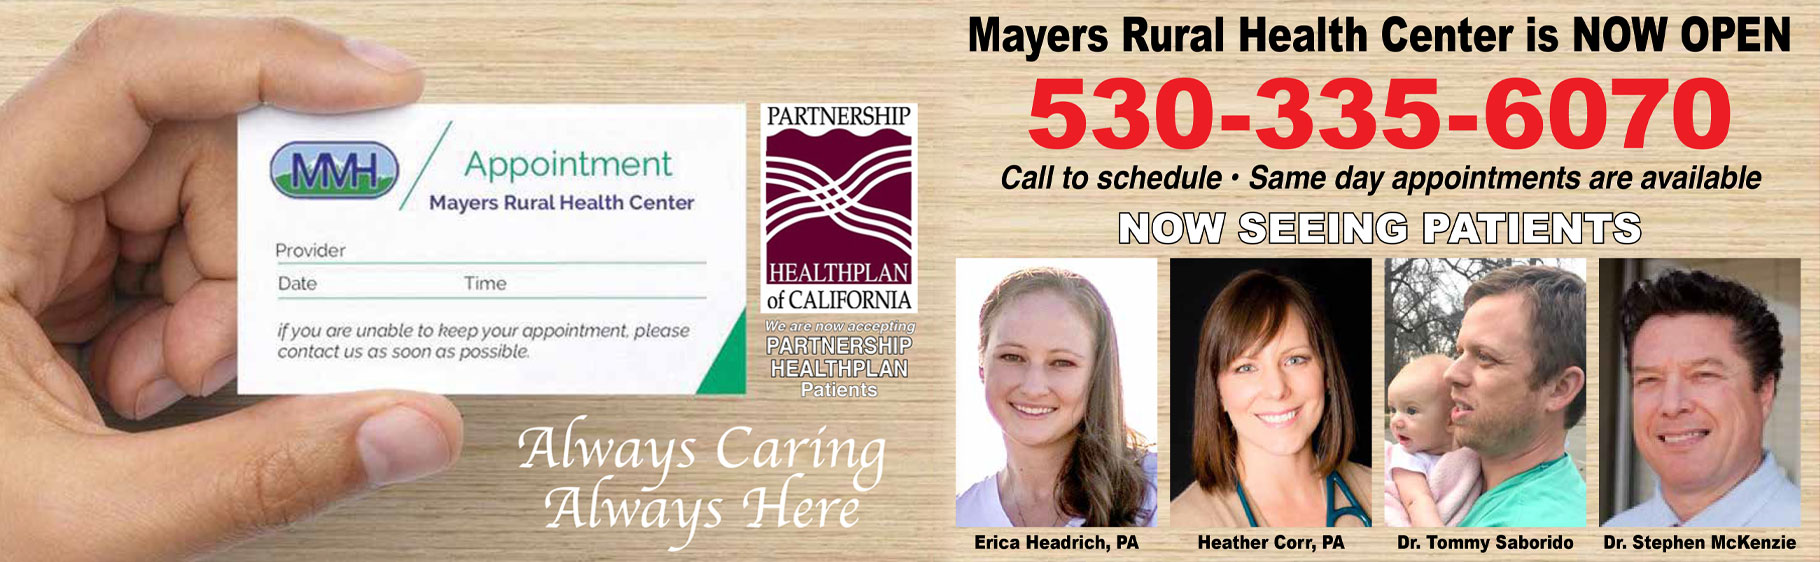 Mayers Rural Health Center is NOW OPEN  530-335-6070  Call to schedule - Same day appointments are available   Now Seeing Patients   Pictured are 4 of our physicians.